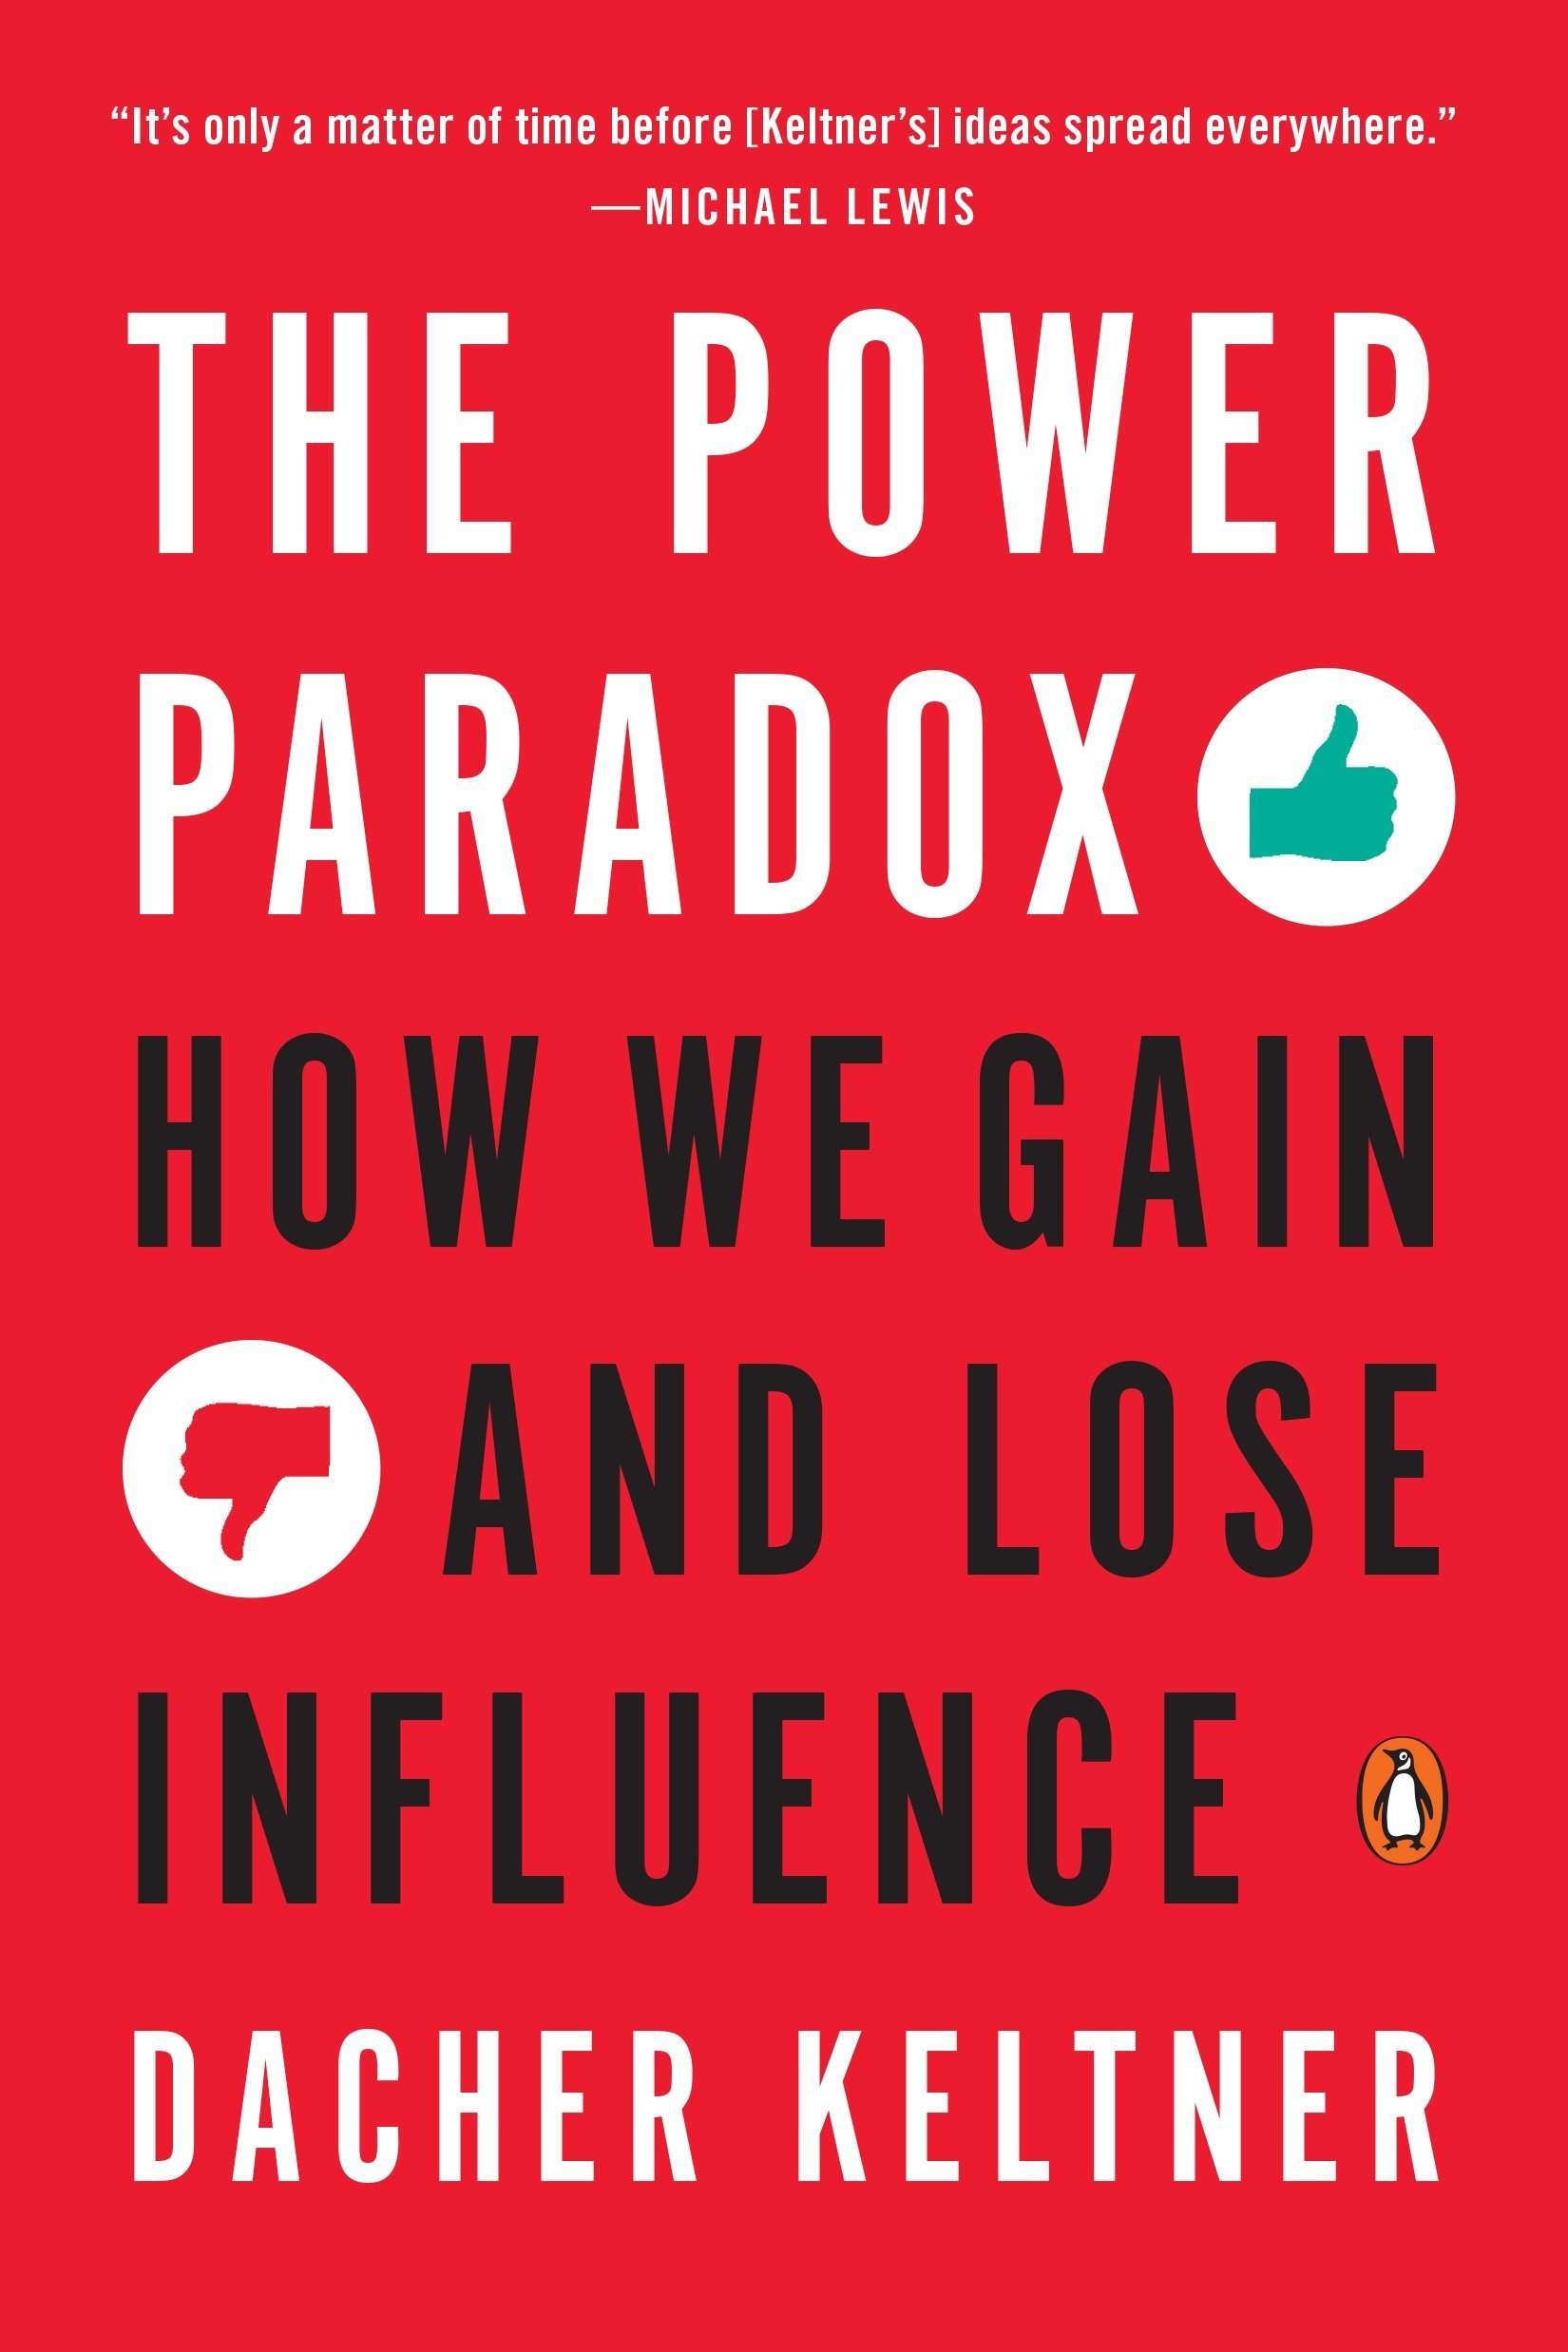 The Power Paradox: How We Gain and Lose Influence: Dacher